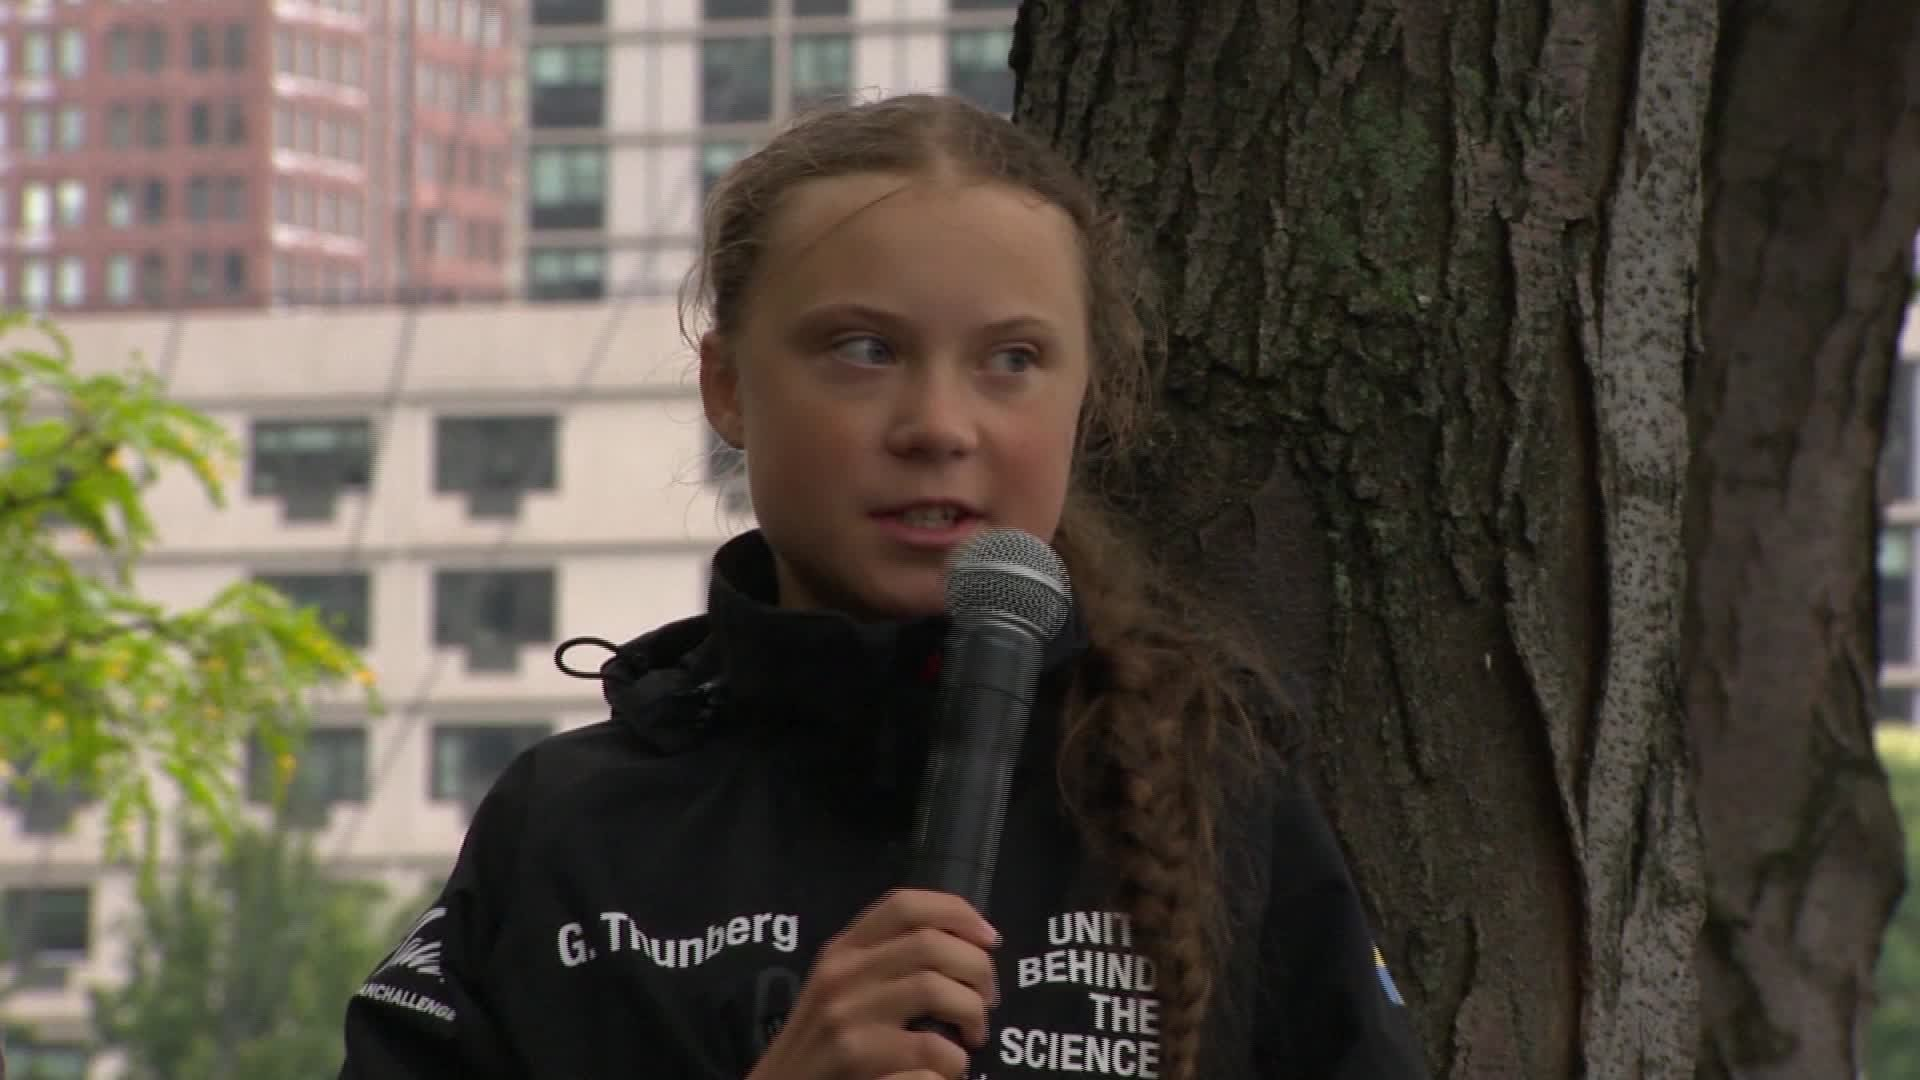 Obama meets with teen climate activist Greta Thunberg: 'You and me, we're a team'